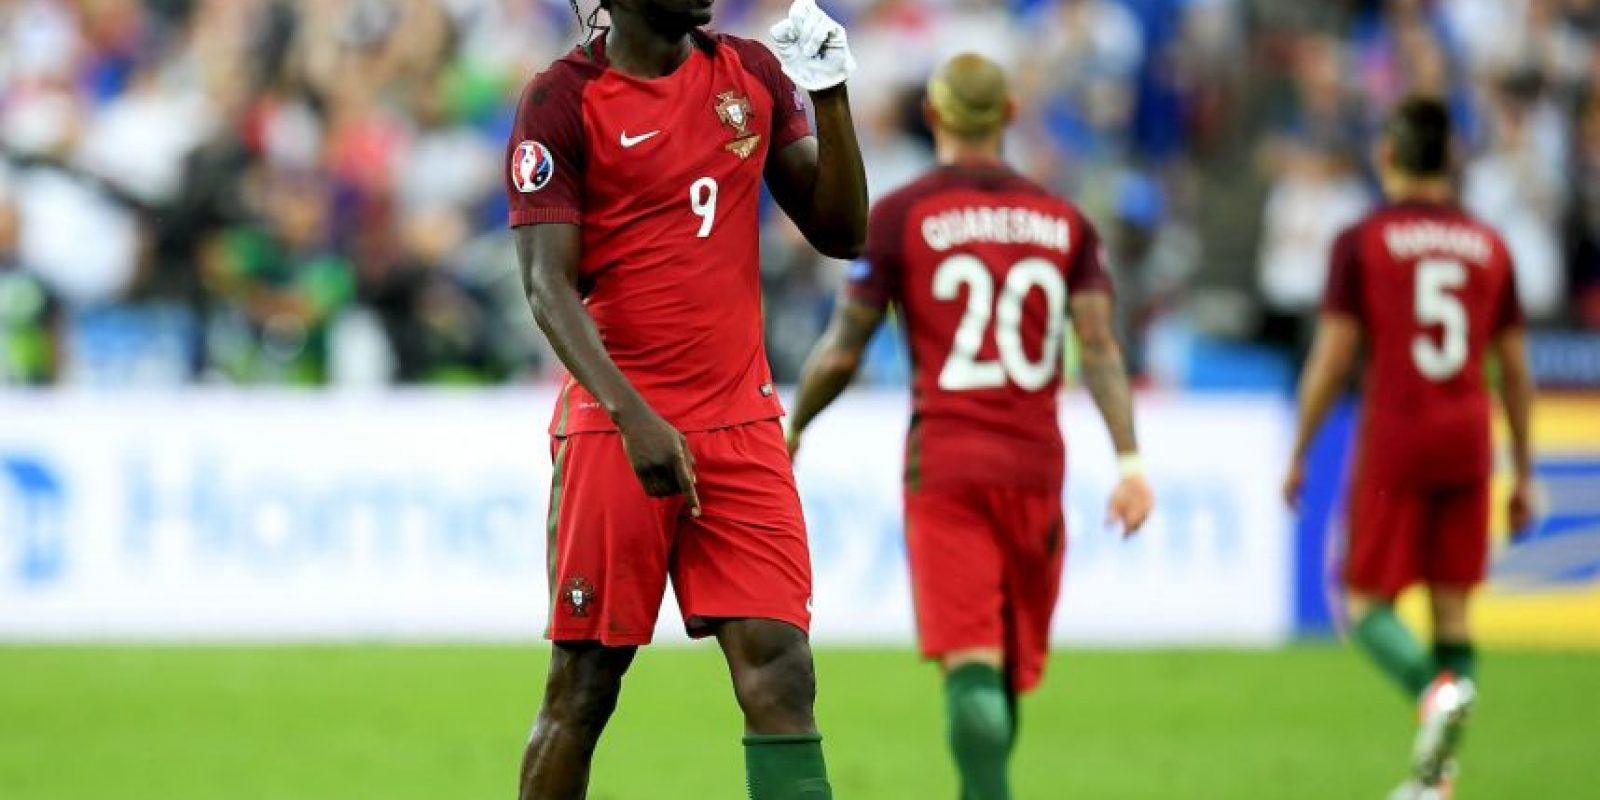 Eder tendrá libro autobiográfico Foto: Getty Images